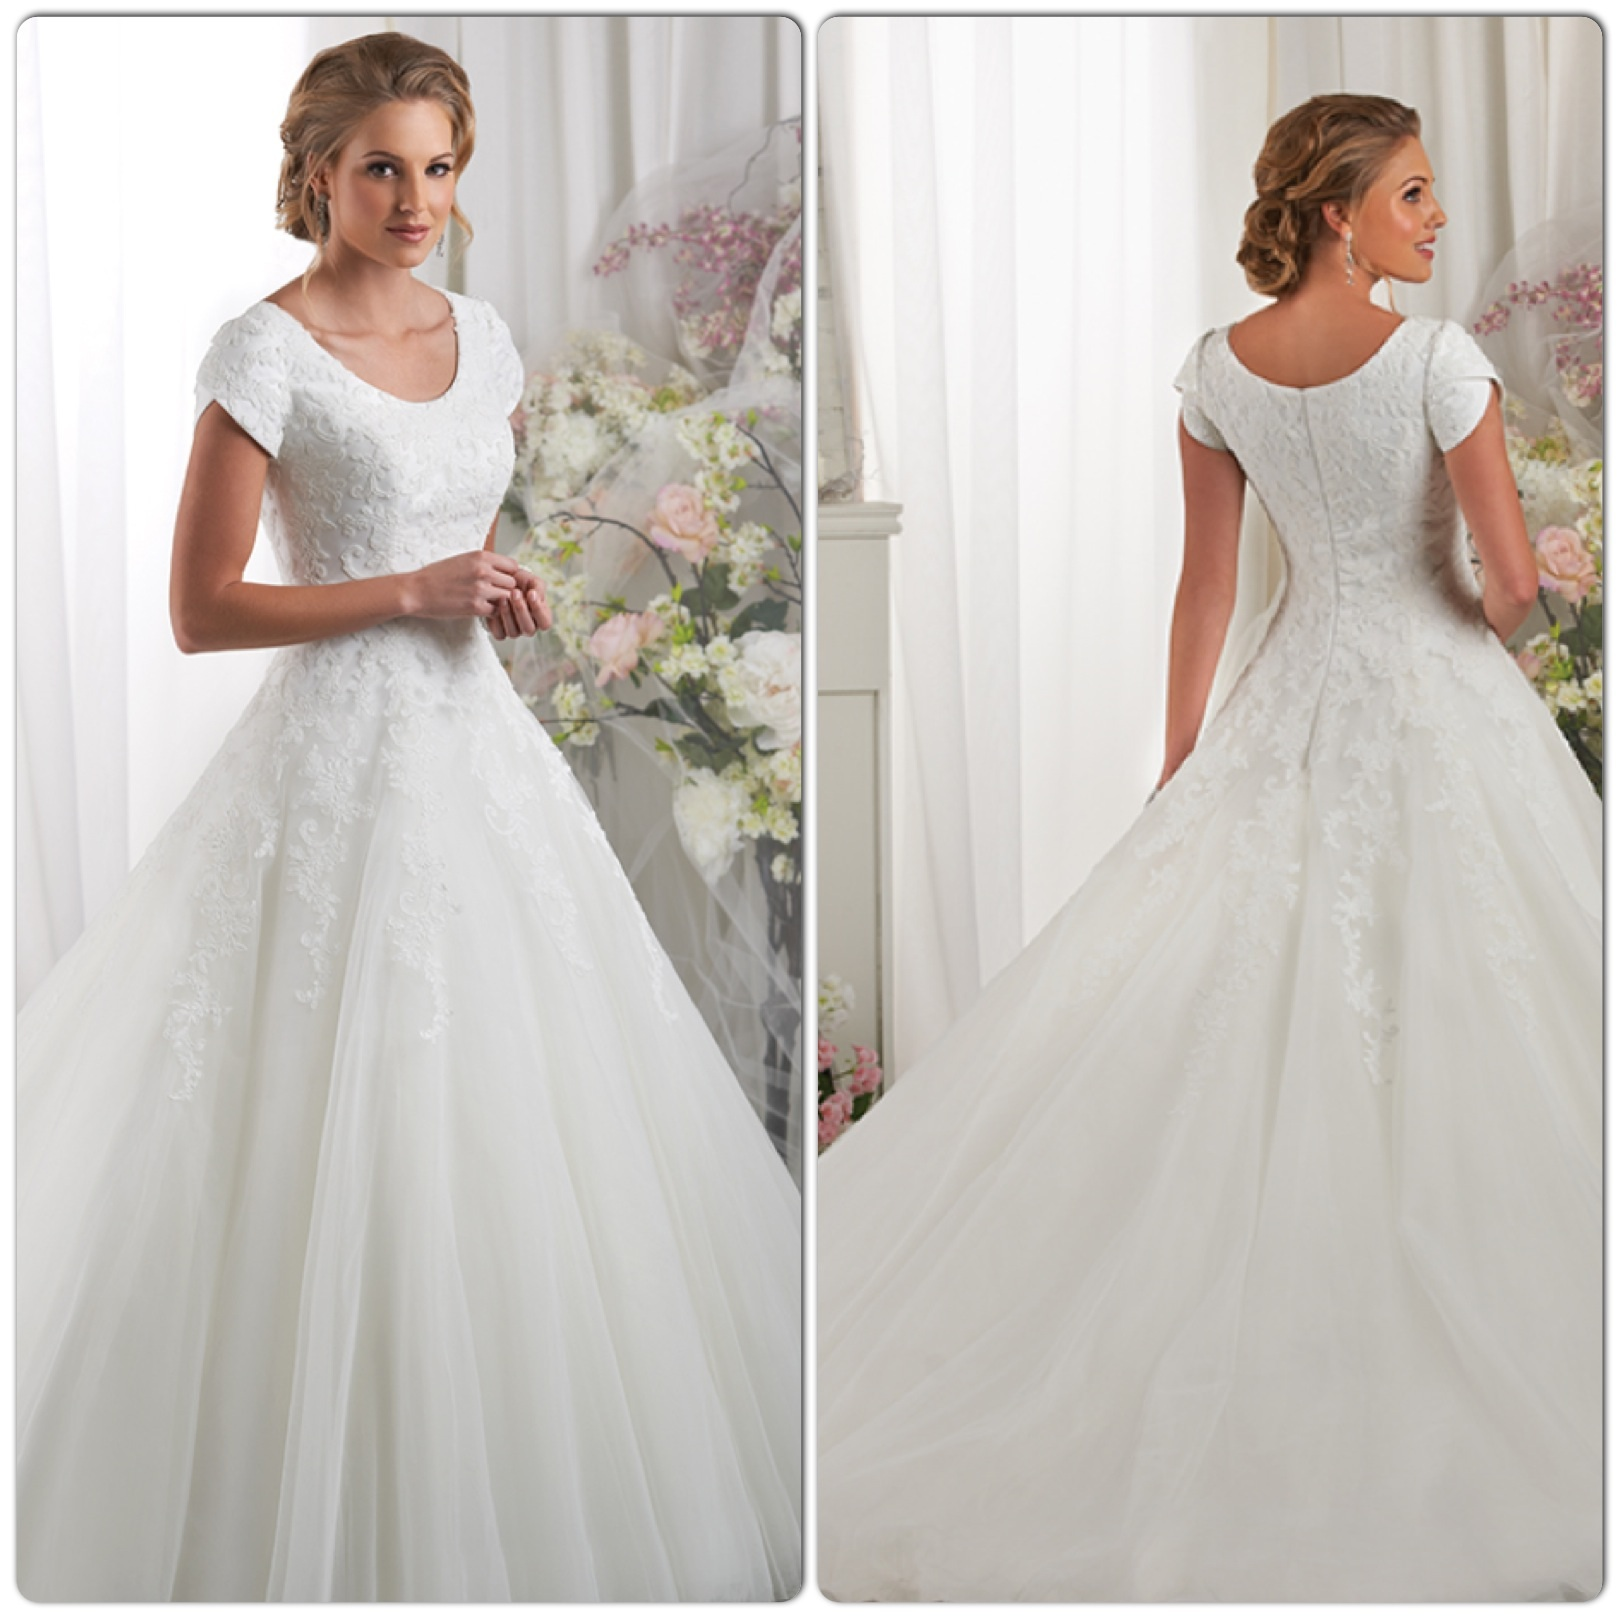 Bridal Gowns Ventura County : Southern california wedding dresses